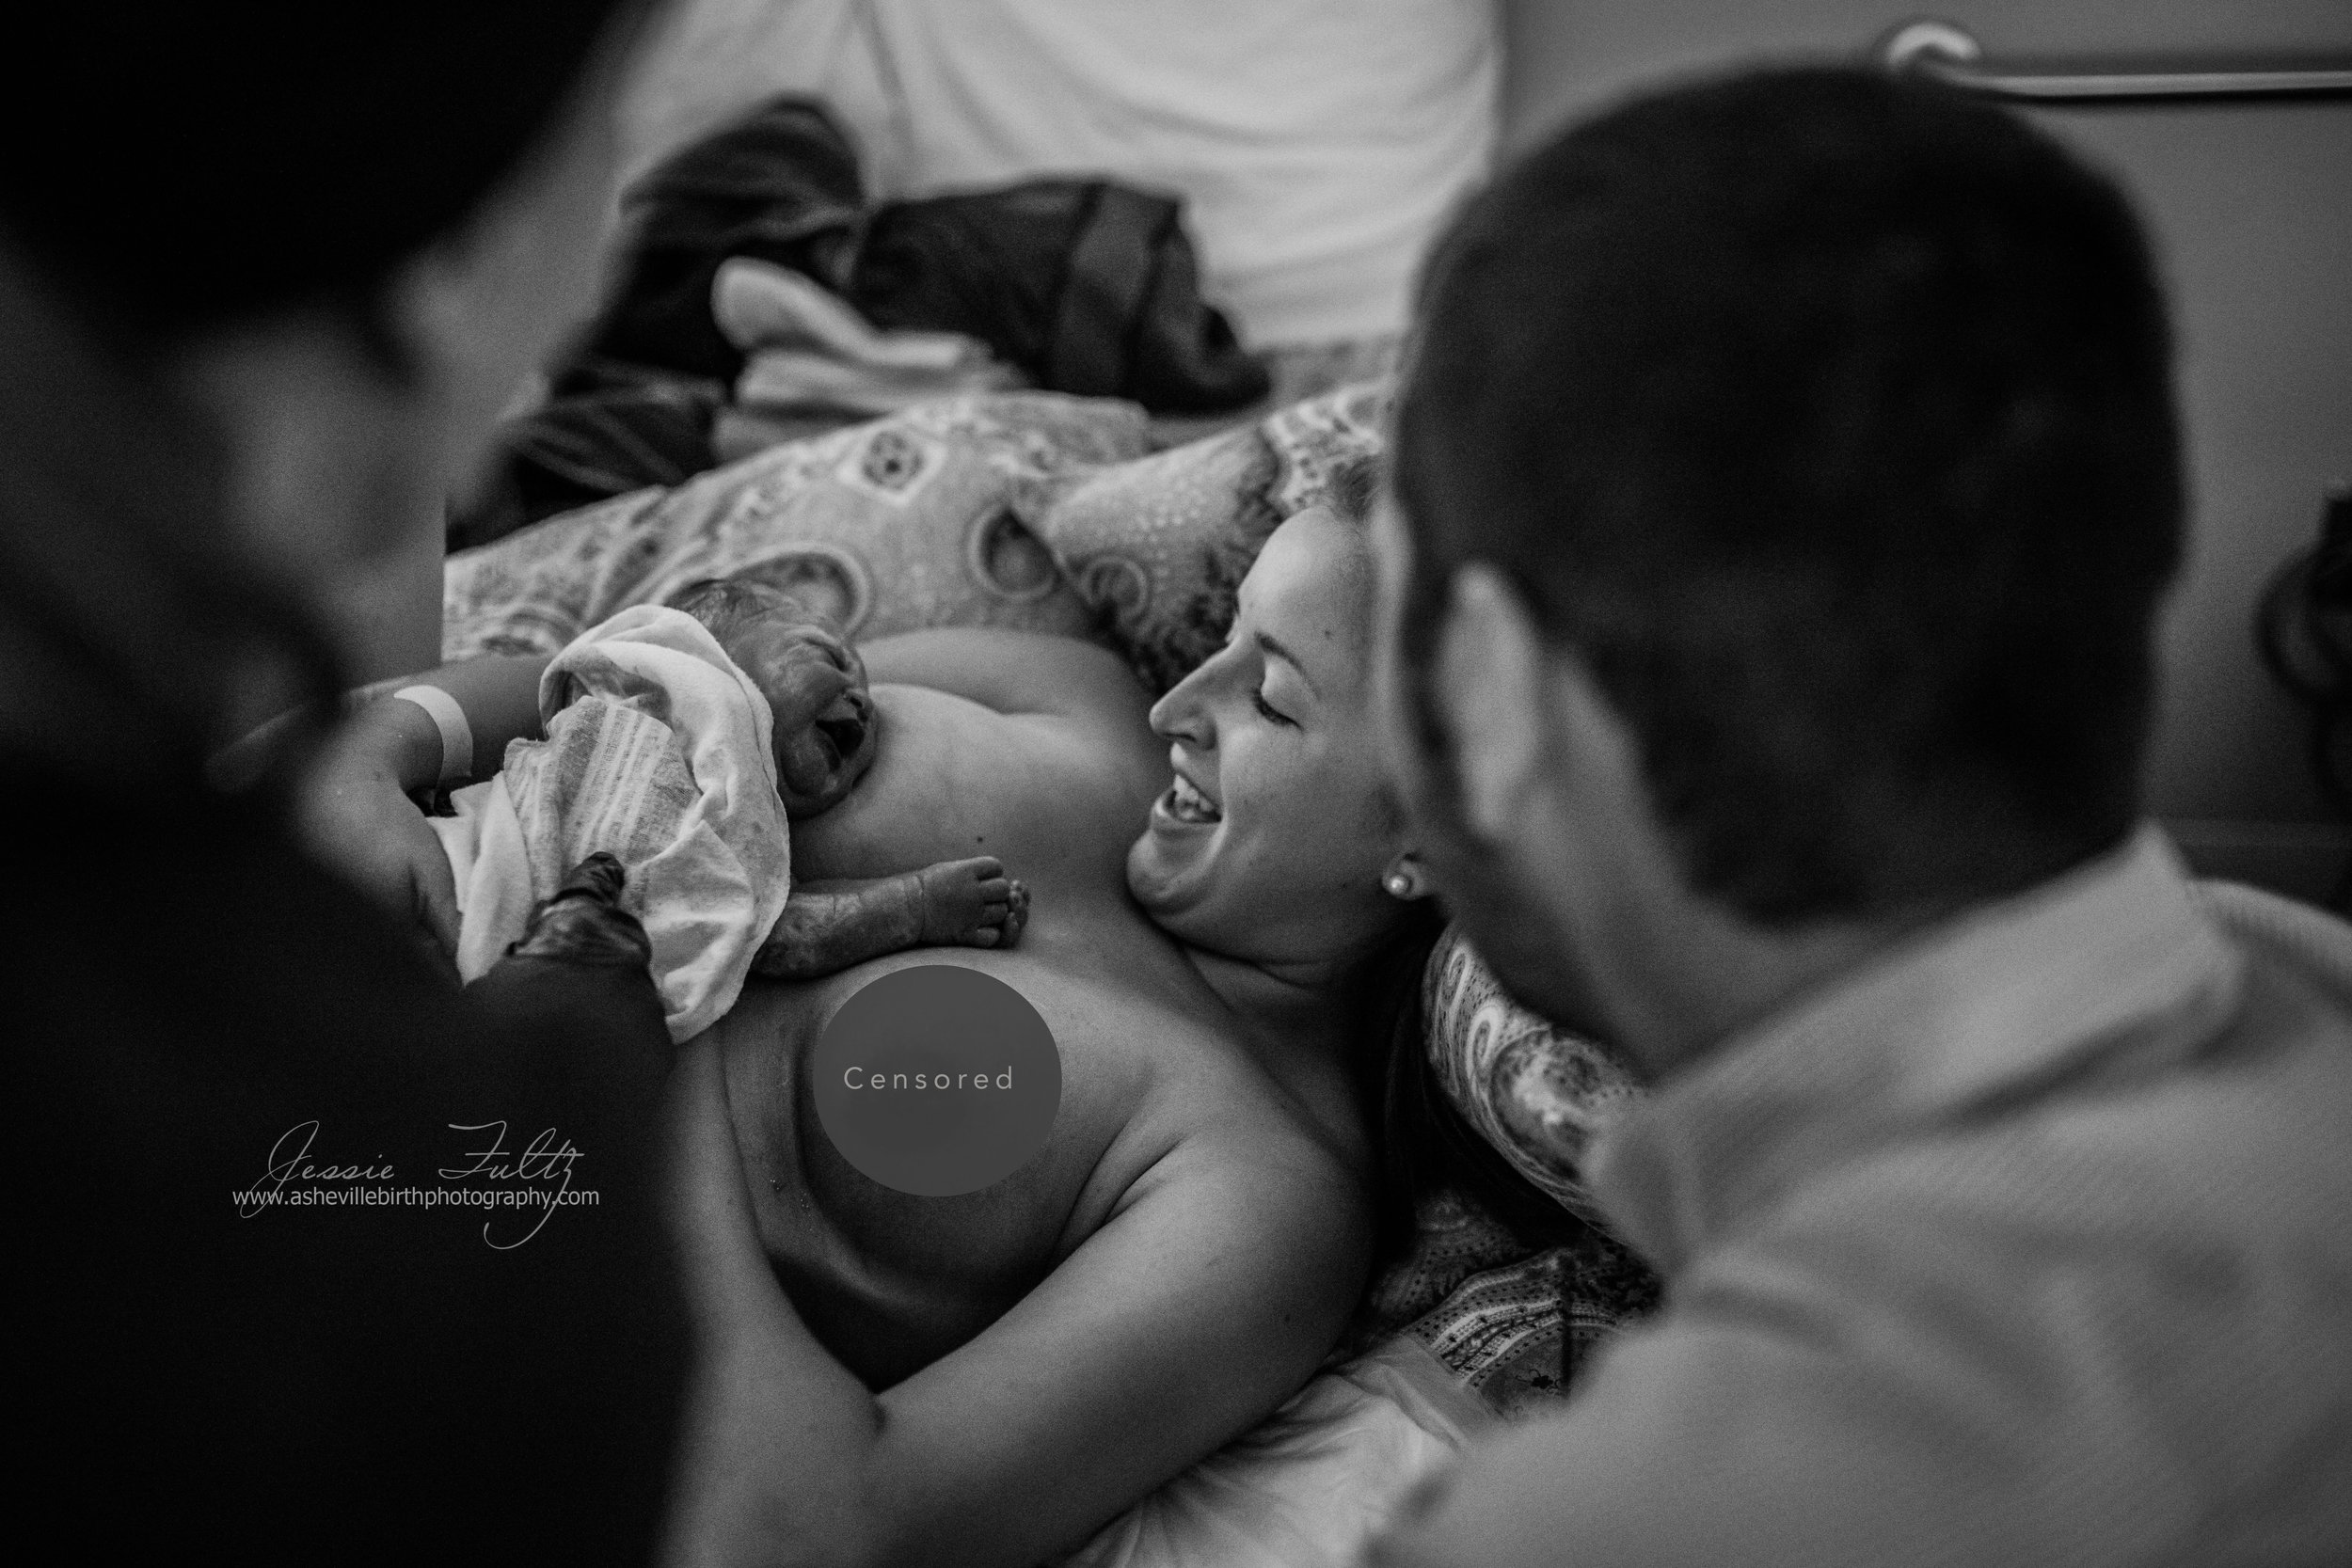 a newborn baby girl on her mom's chest while the woman looks down in joy at her baby